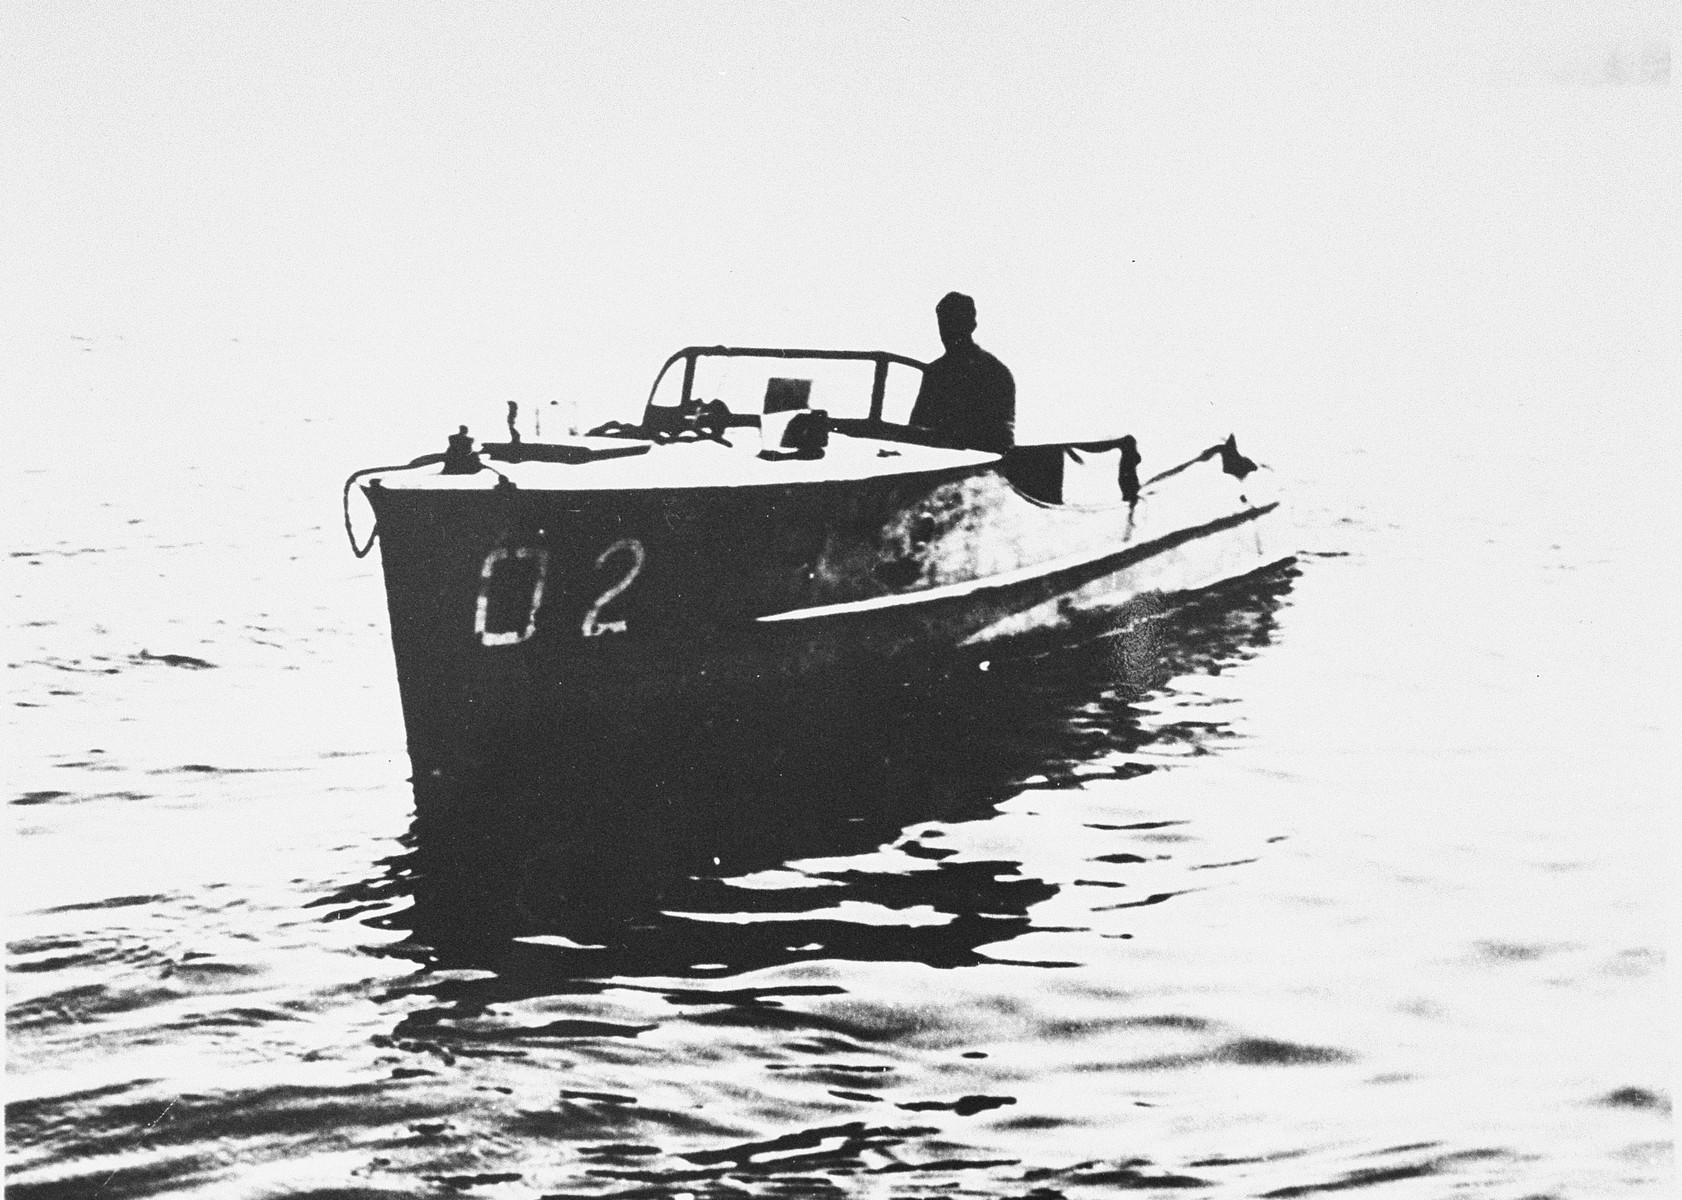 View of a Danish fishing boat that was used in the rescue of Jews during the occupation of Denmark.  Driven by Thormod Larsen, this boat is the one now on display in the permanent exhibition of the United States Holocaust Memorial Museum.